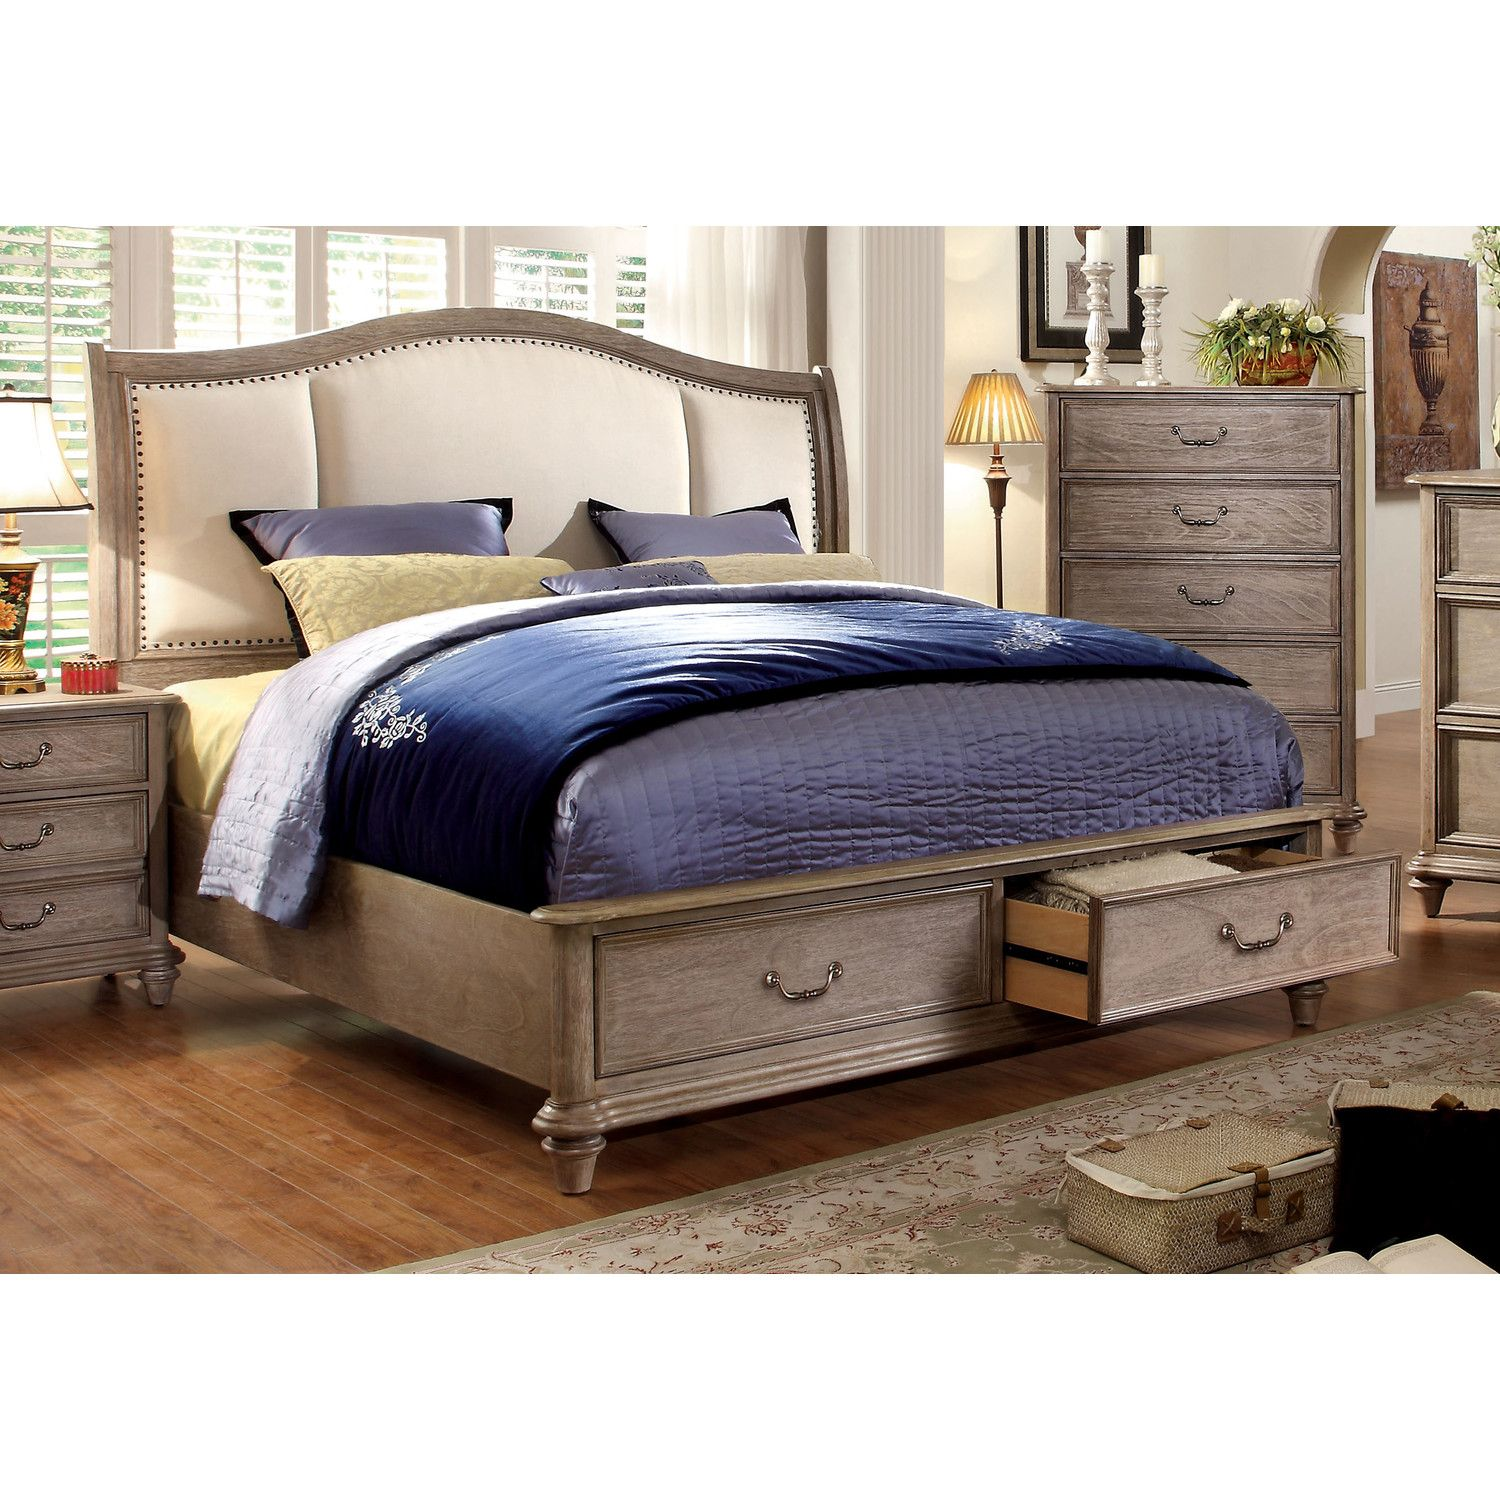 Grey Wood Bedroom Furniture Best Plaza Storage Bed  Wayfair  My Future Home Is Going To Be Review